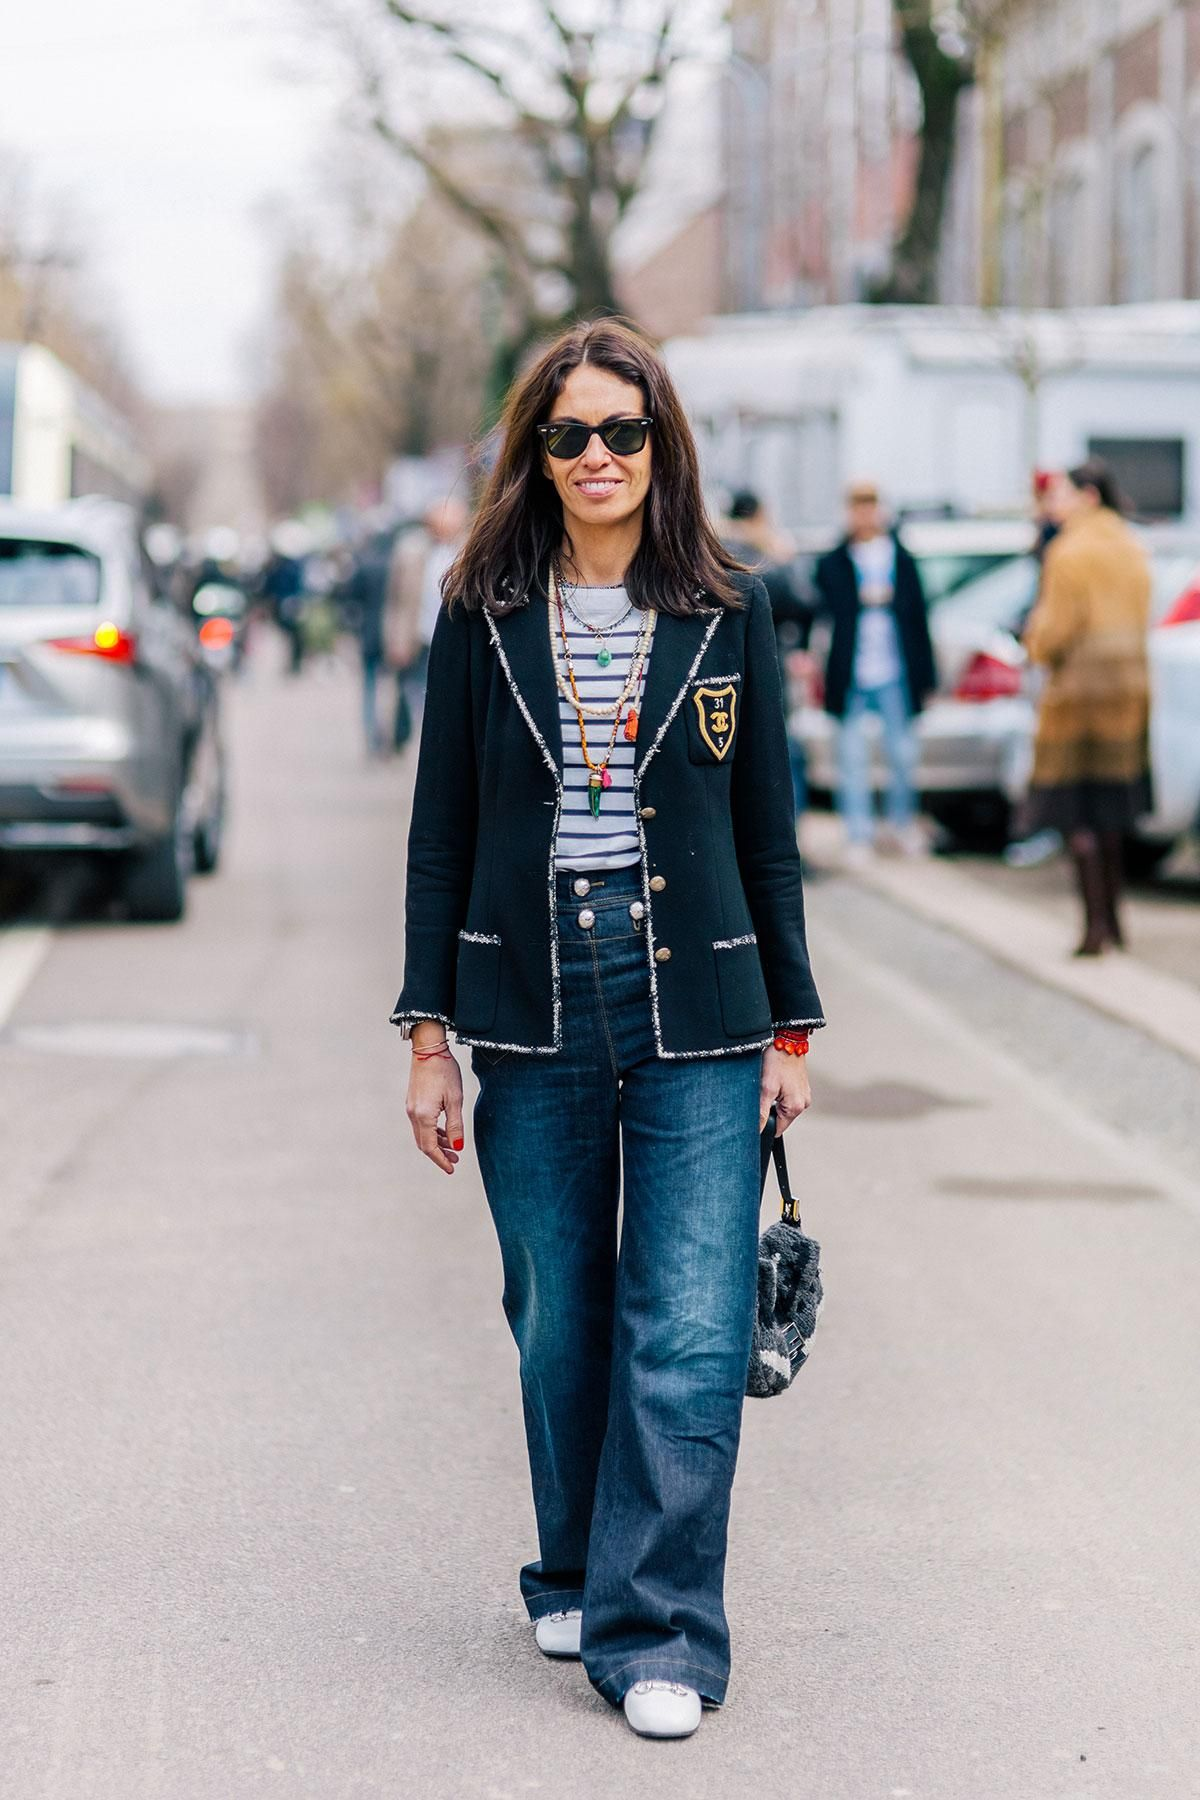 See 12 Street Style Stars, Actresses, And It Girls In Amazing ChanelOutfits